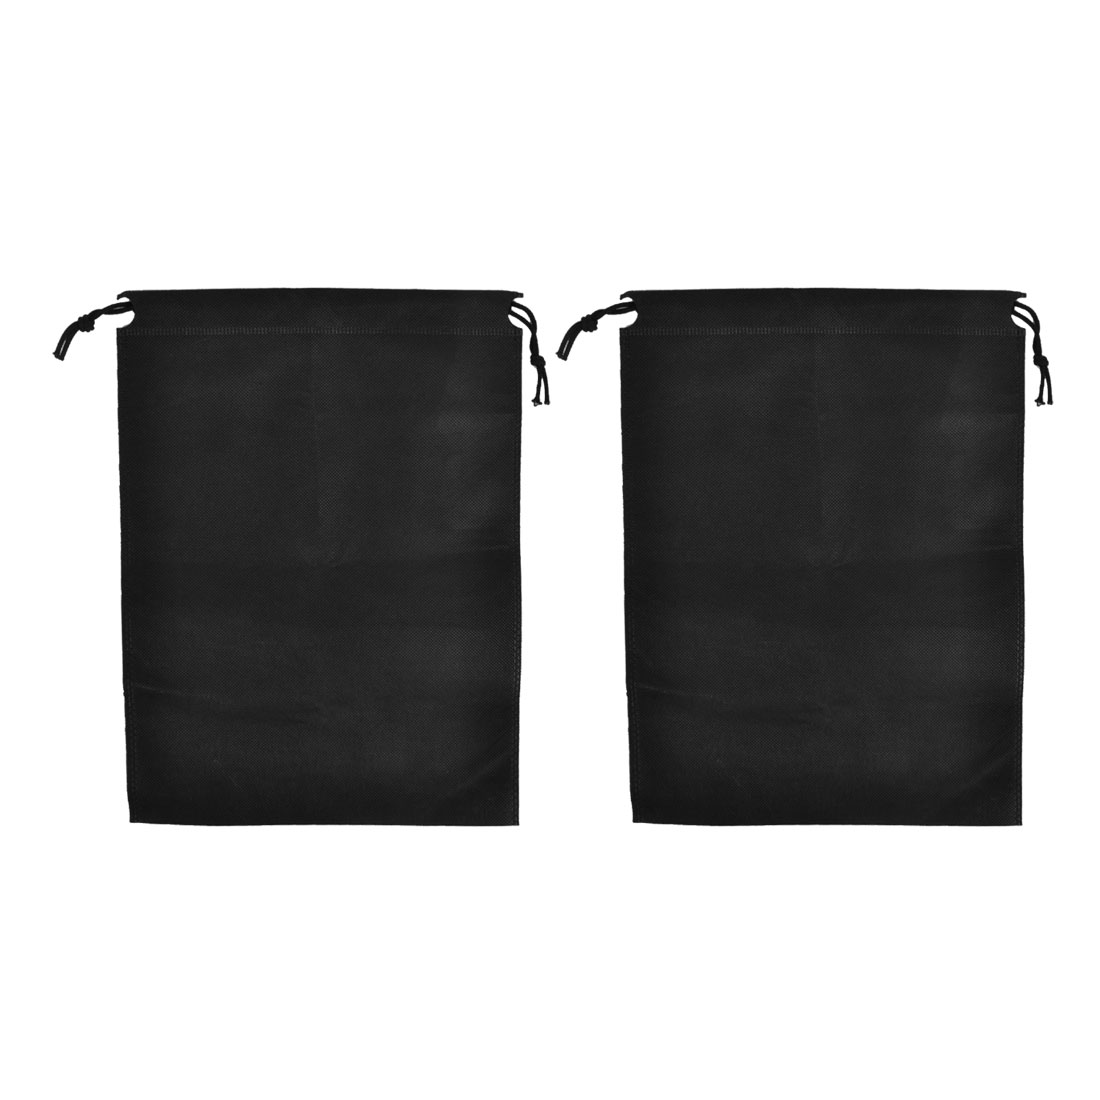 Traveling Clothes Dust Cover Storage Drawstring Bags Black 34 x 25cm 2pcs